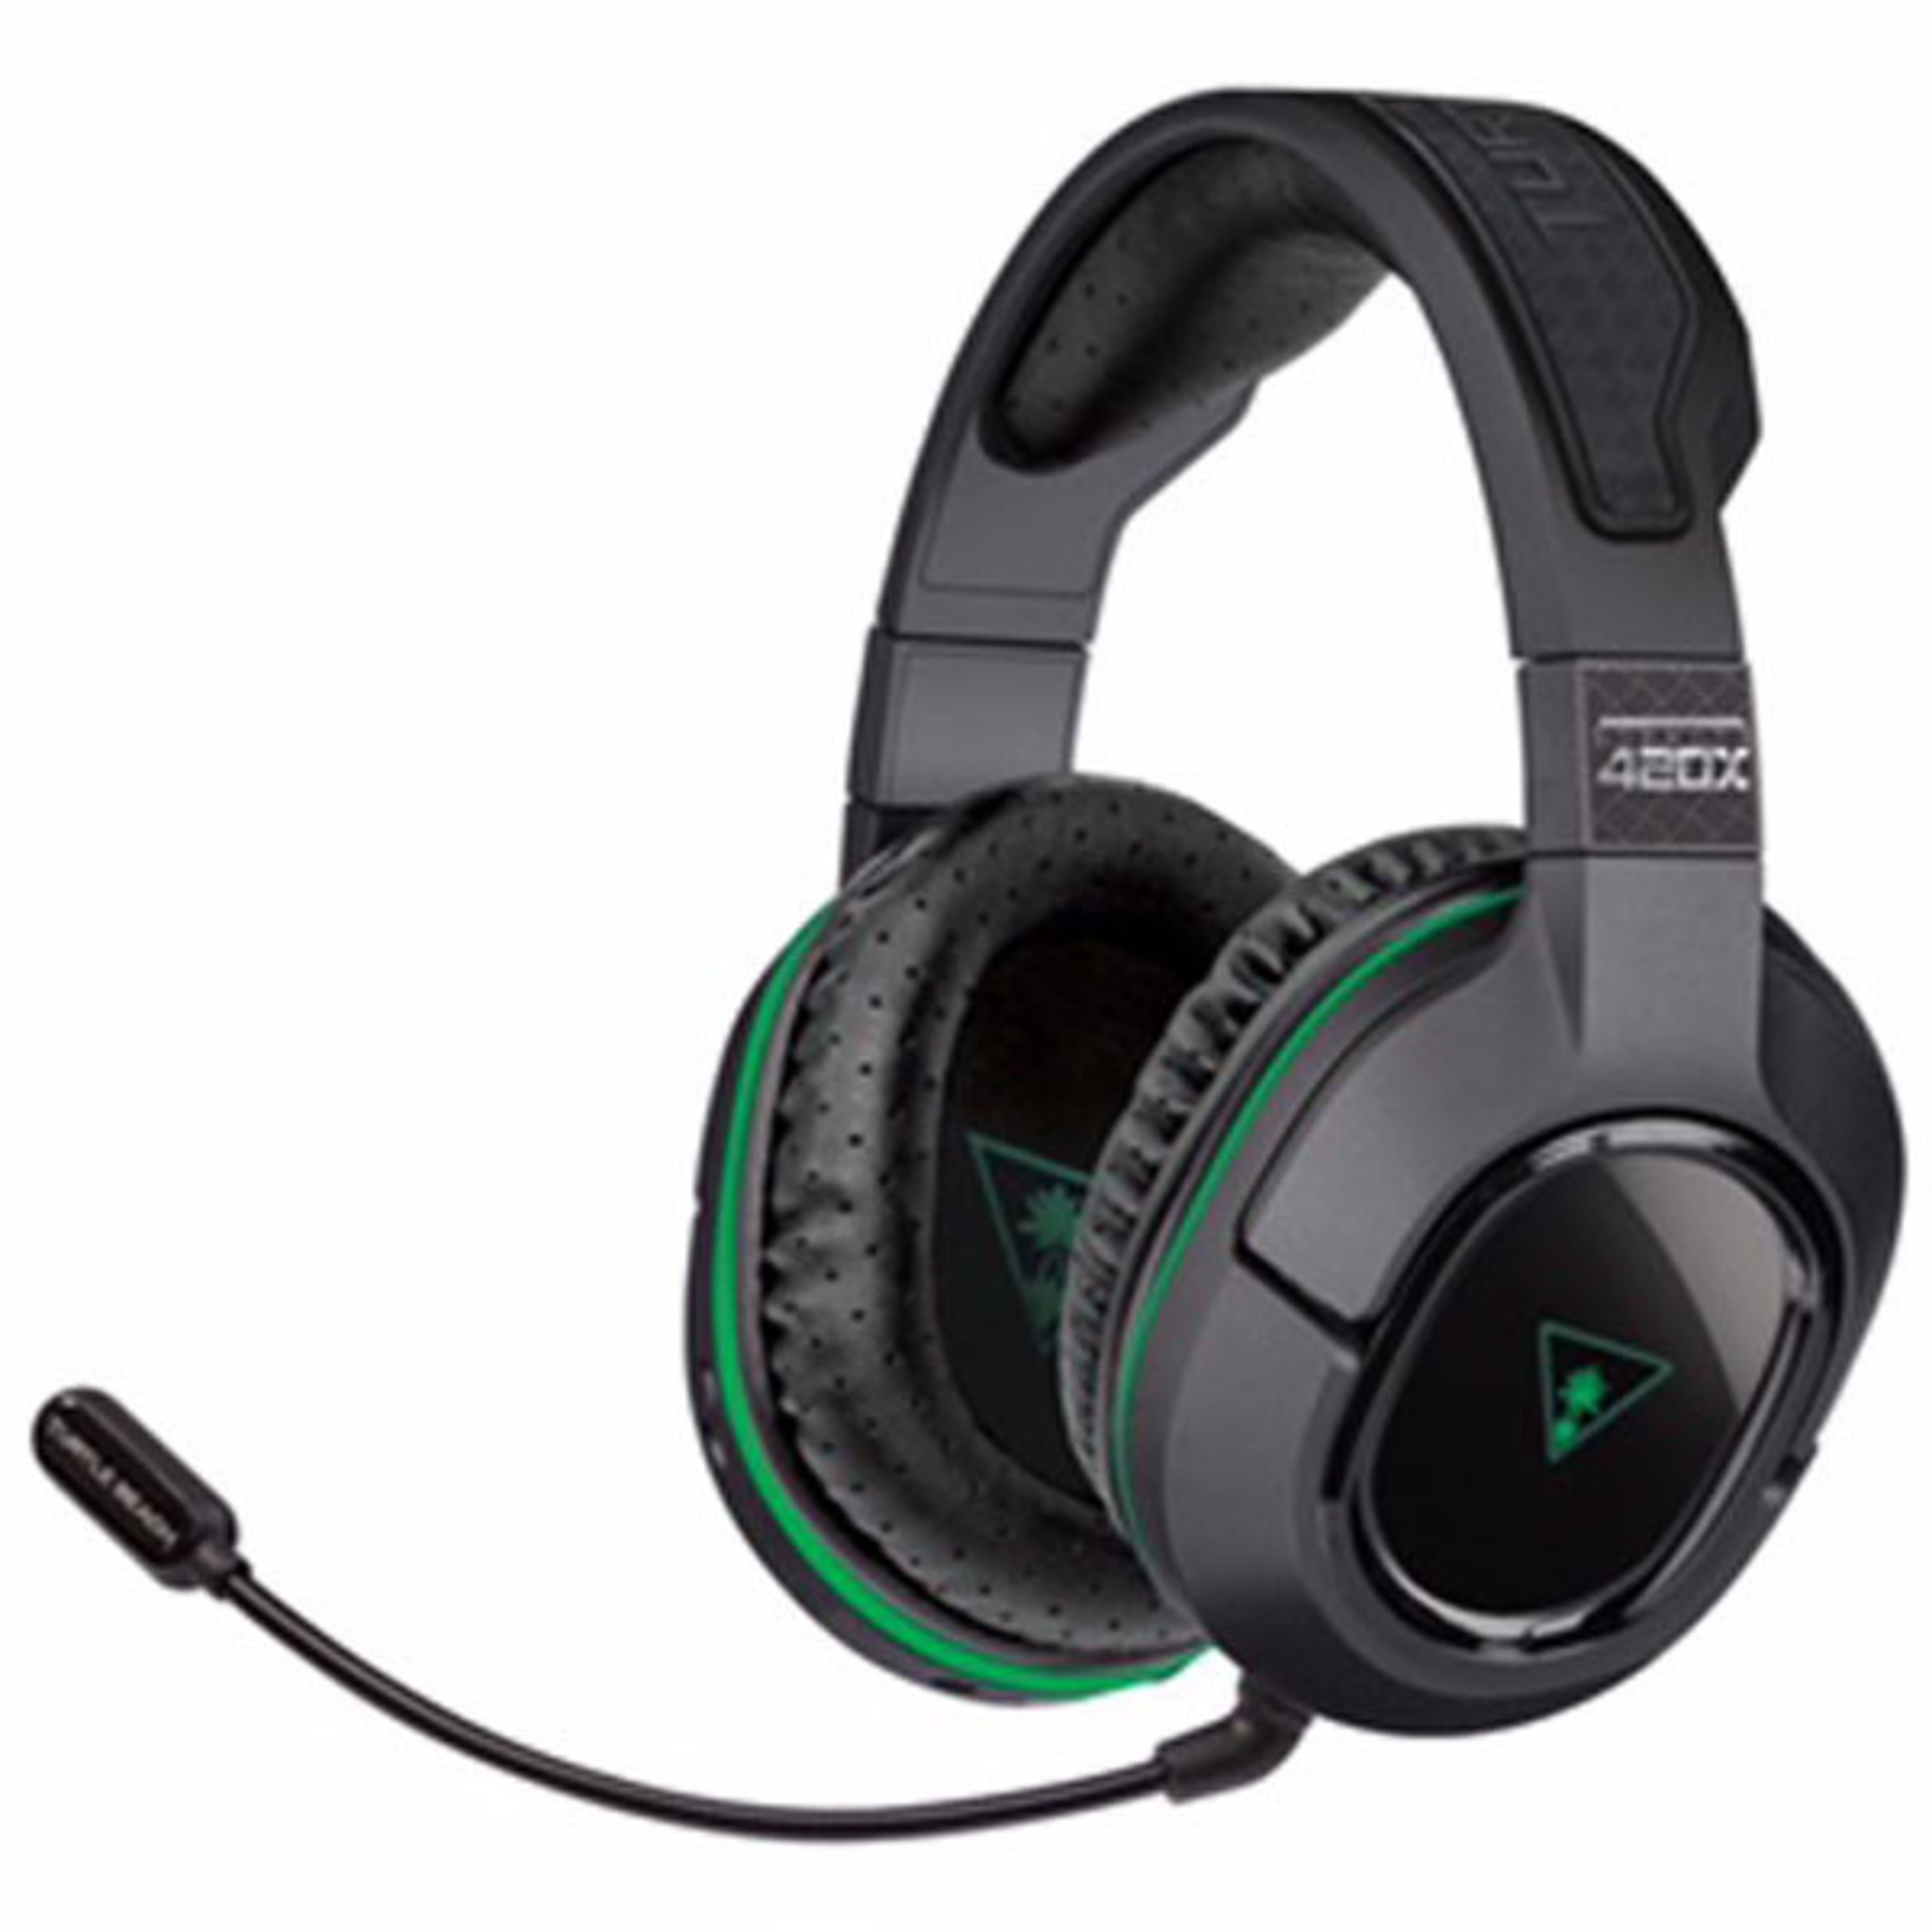 Turtle Beach Launches Third 100% Fully Wireless Xbox One Gaming Headset - The EAR FORCE' Stealth 420X - Available At Retail Tomorrow For A MSRP Of $149.95